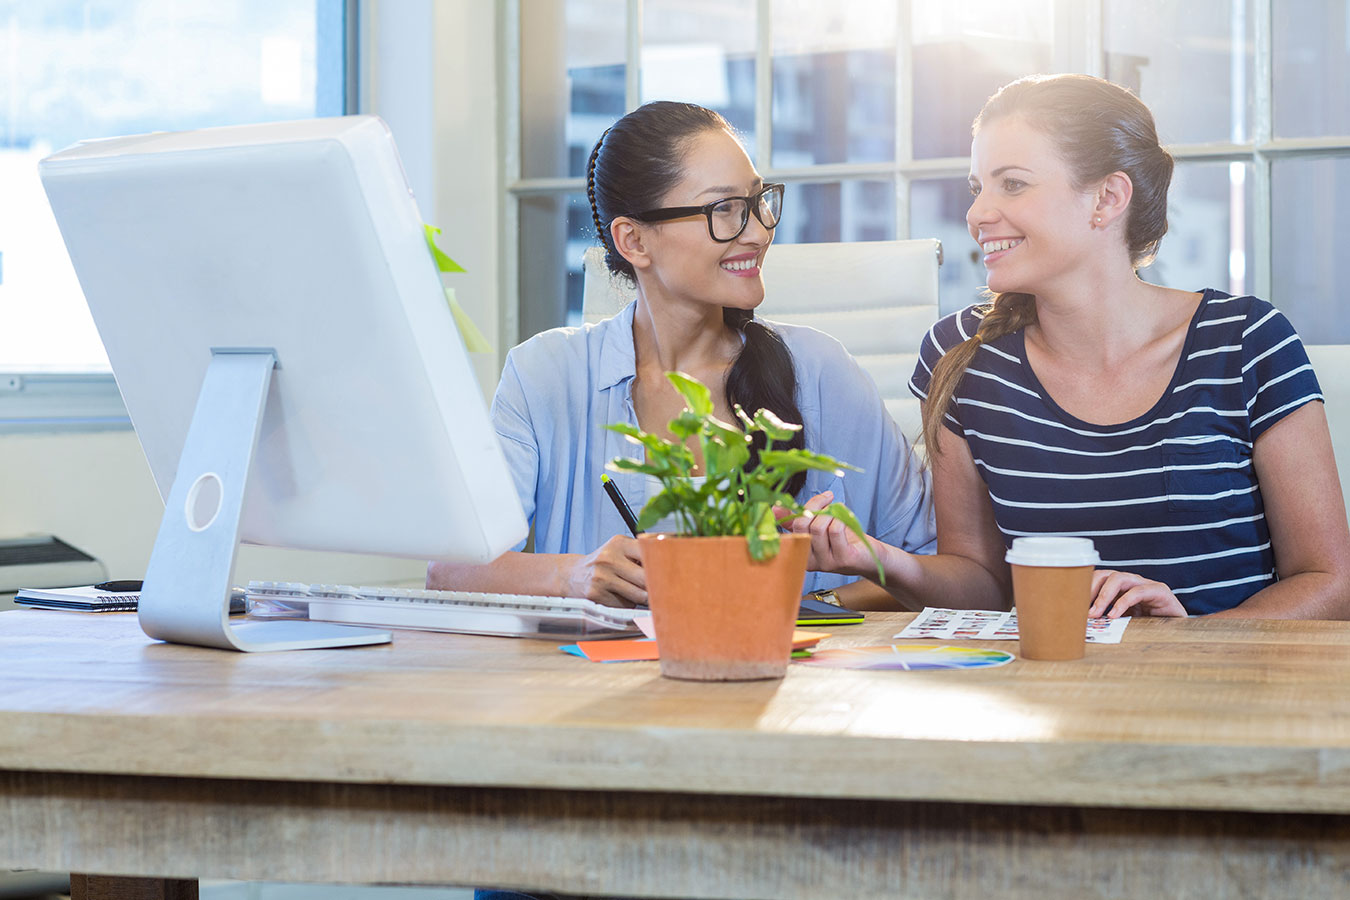 Two female associates collaborating together at work